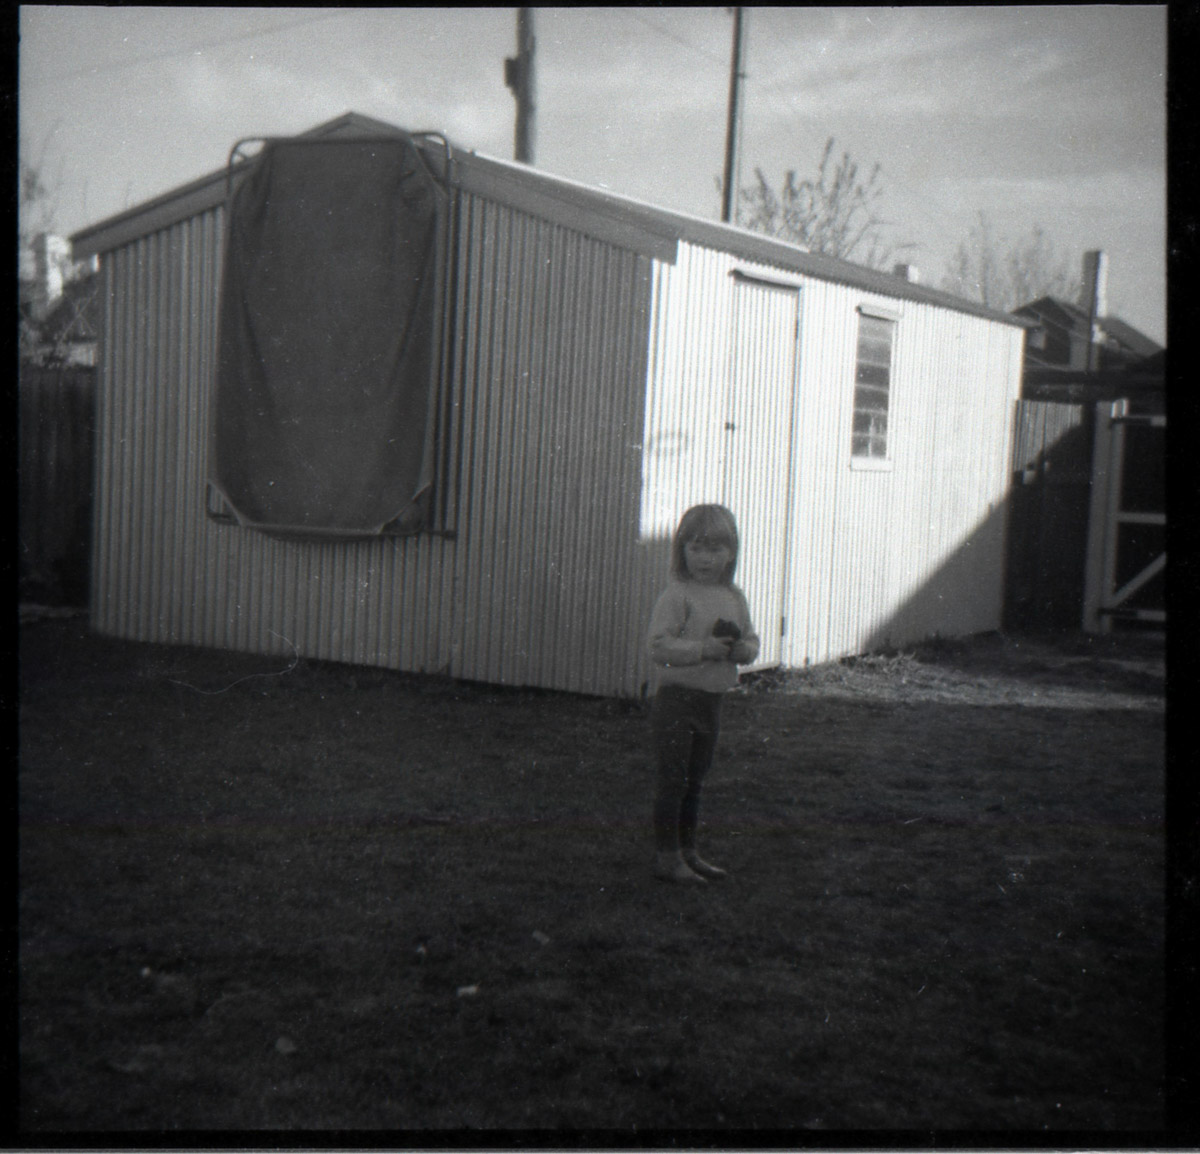 And this was the shed in our back yard, with the wading pool hanging up.